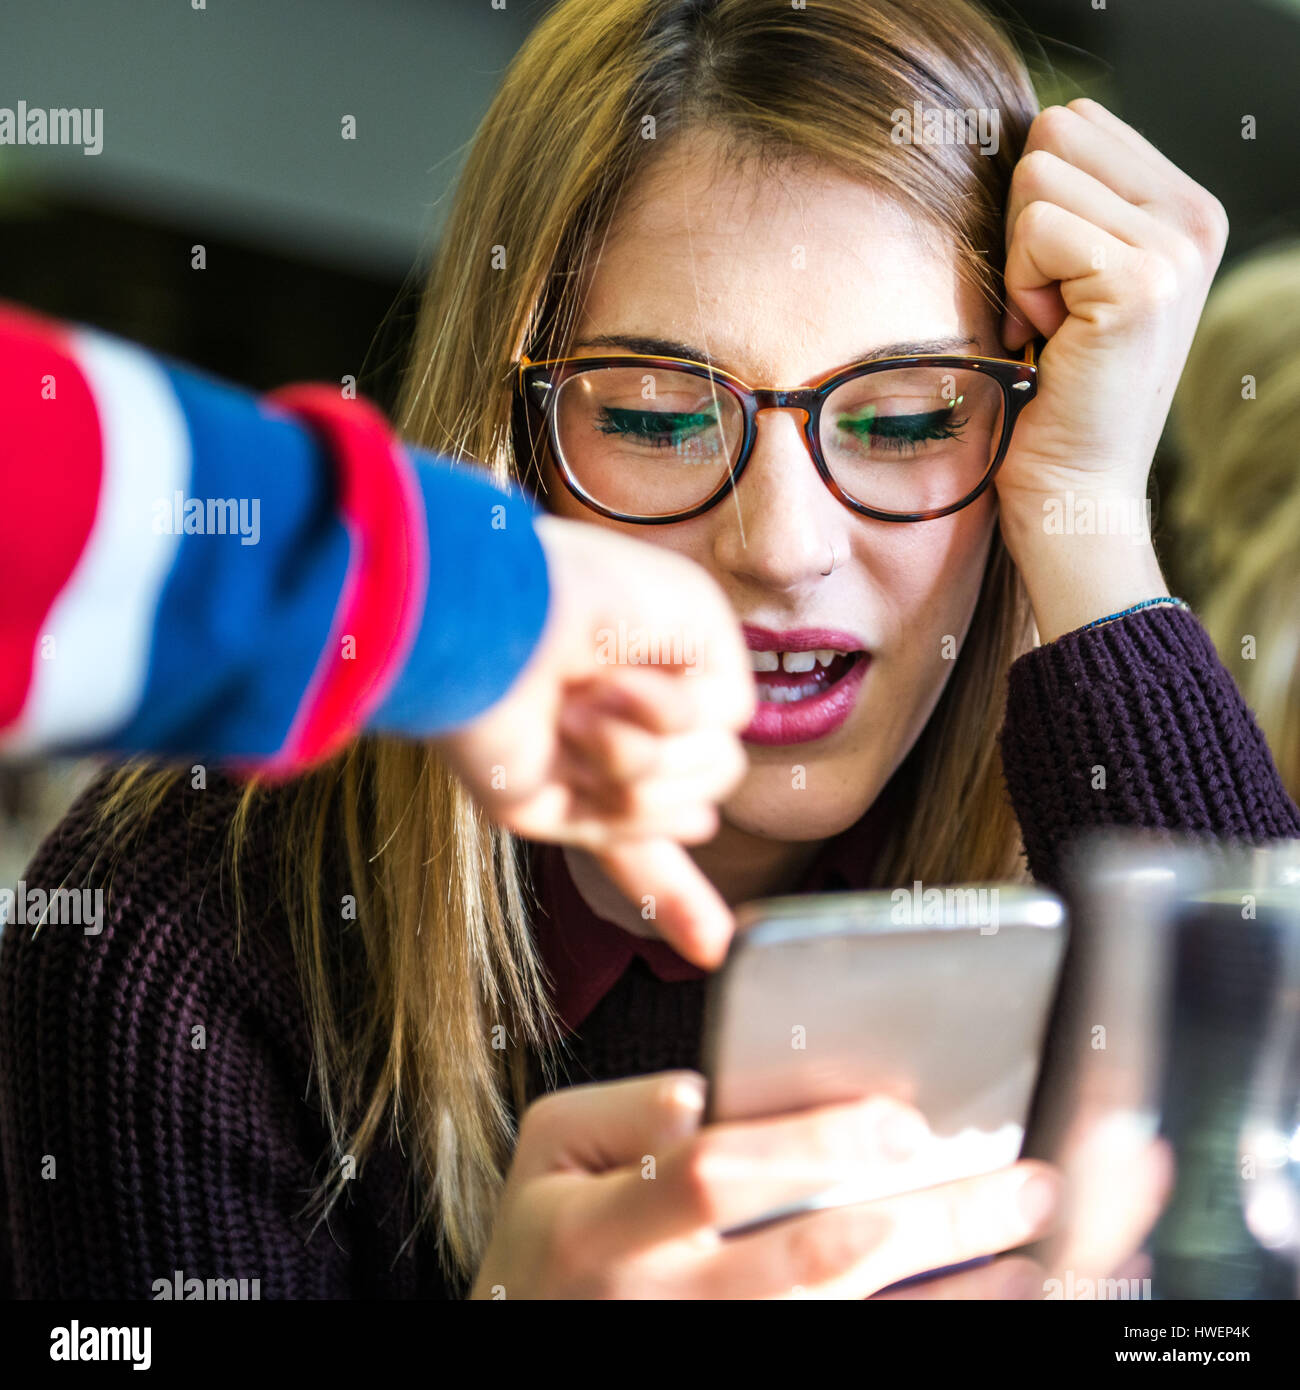 Young woman with boy's hand pointing at smartphone in cafe - Stock Image